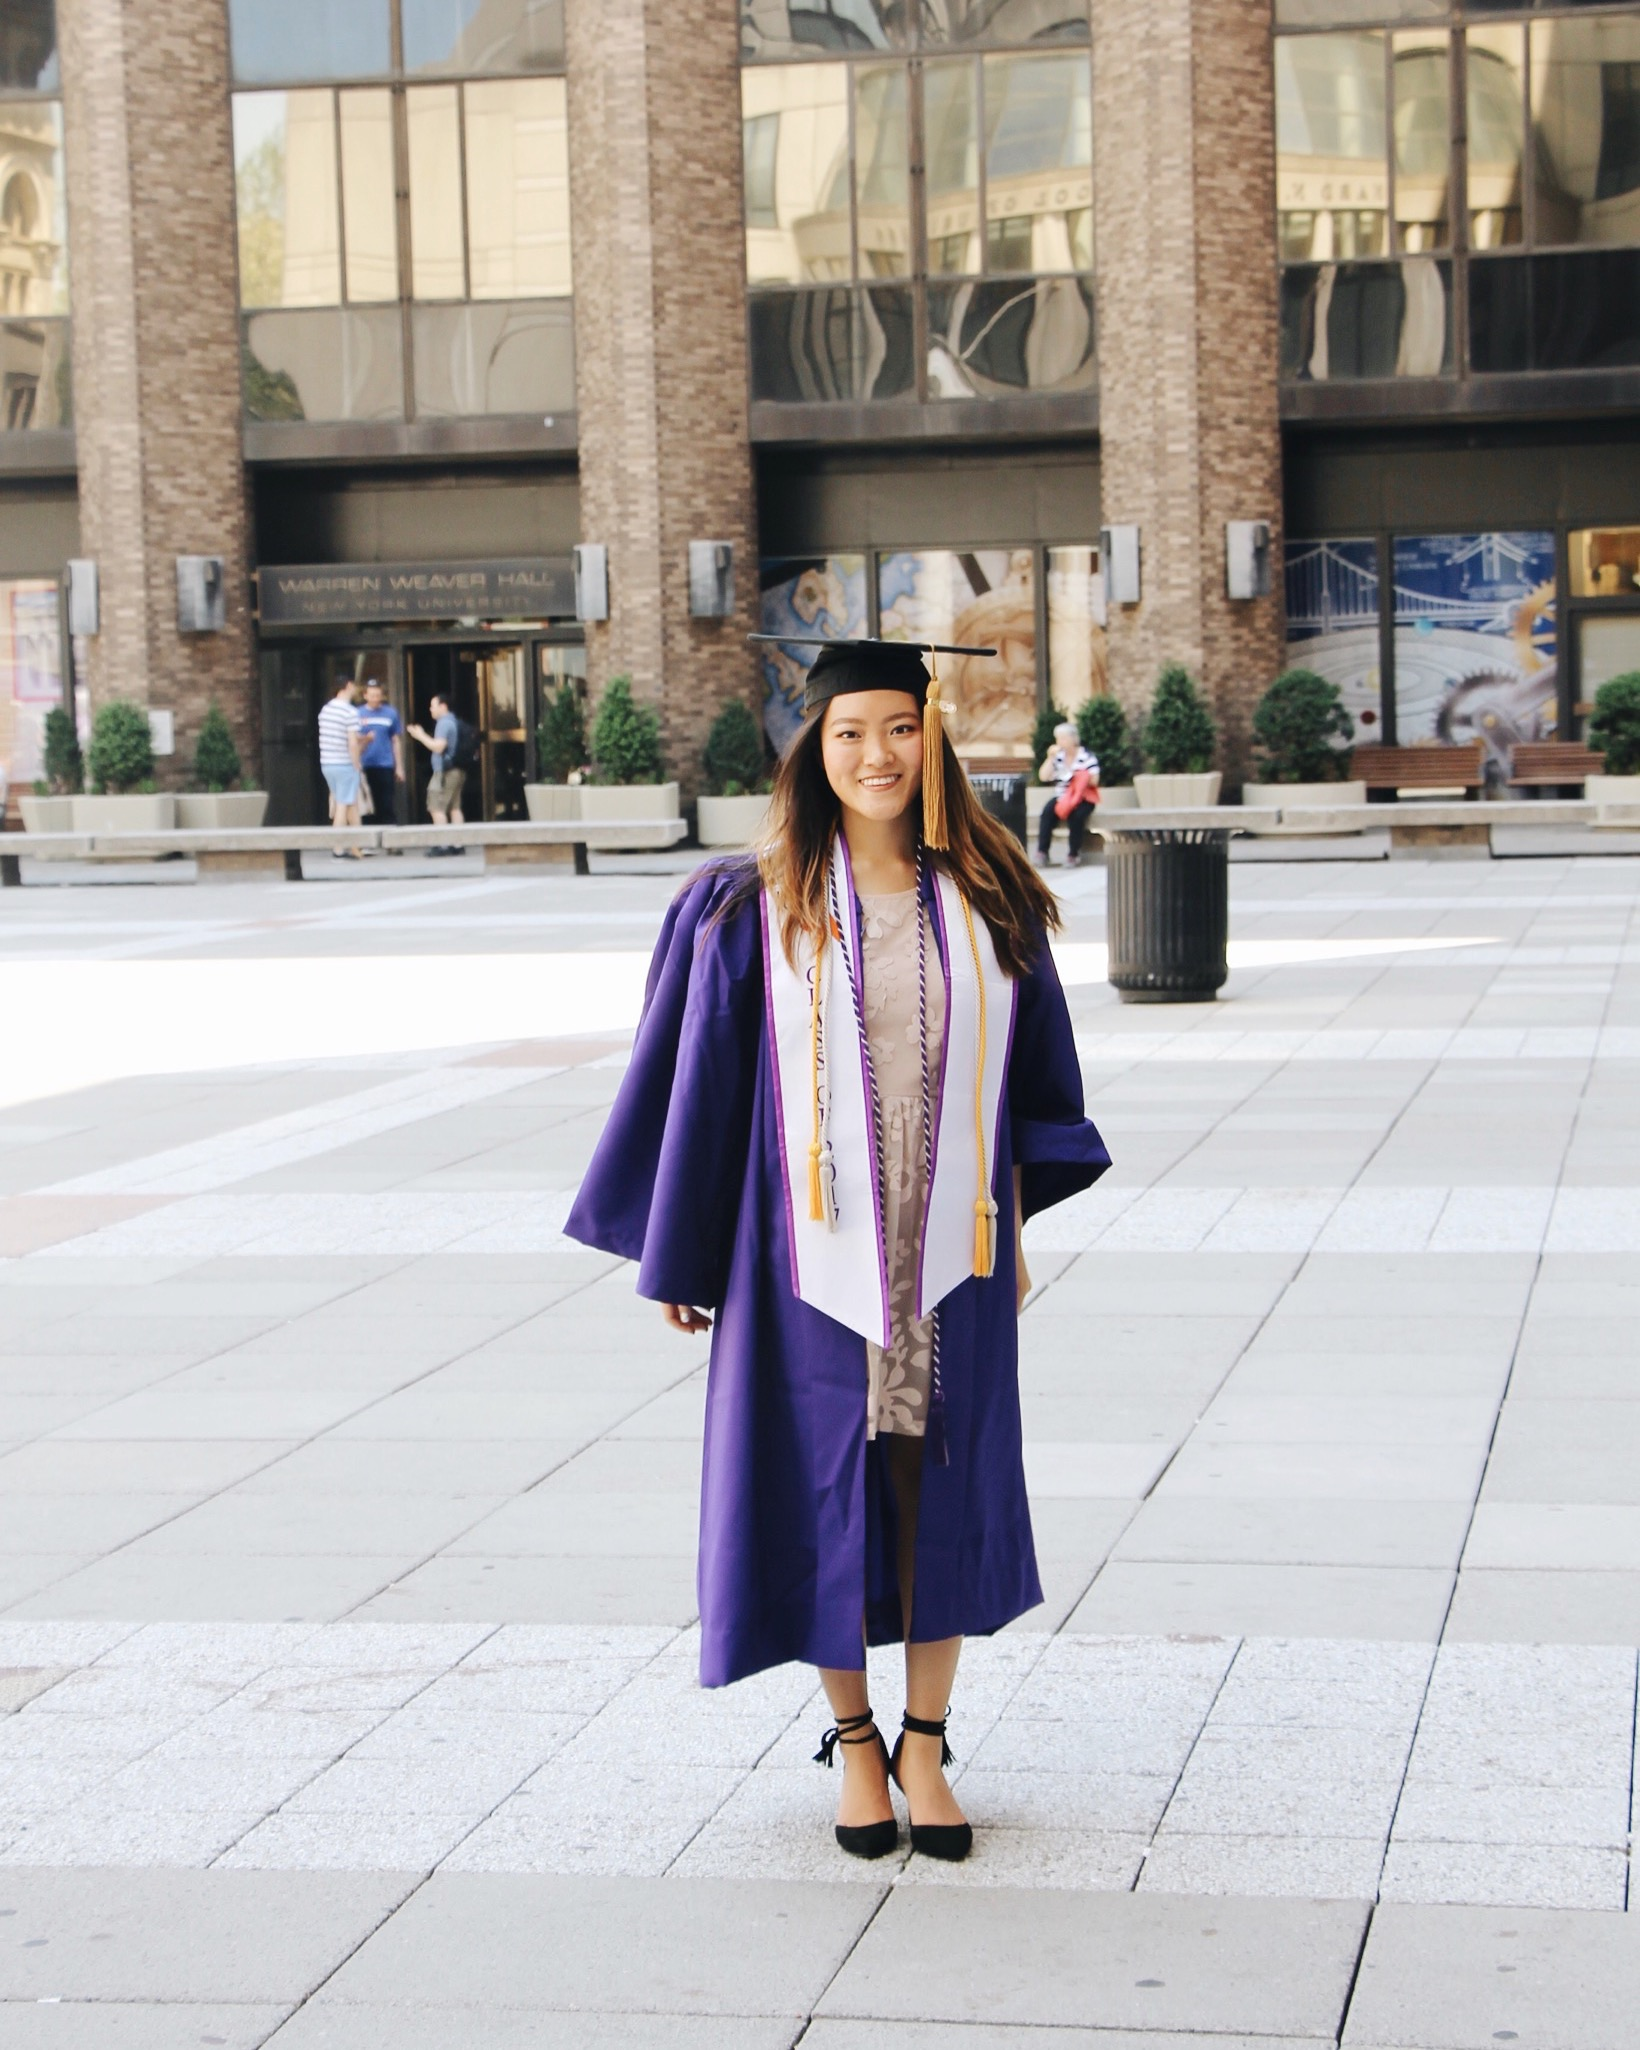 NYU Stern Graduation, Graduating From NYU Stern, NYU Graduation, #iamstern, #wearestern, Stern 2017